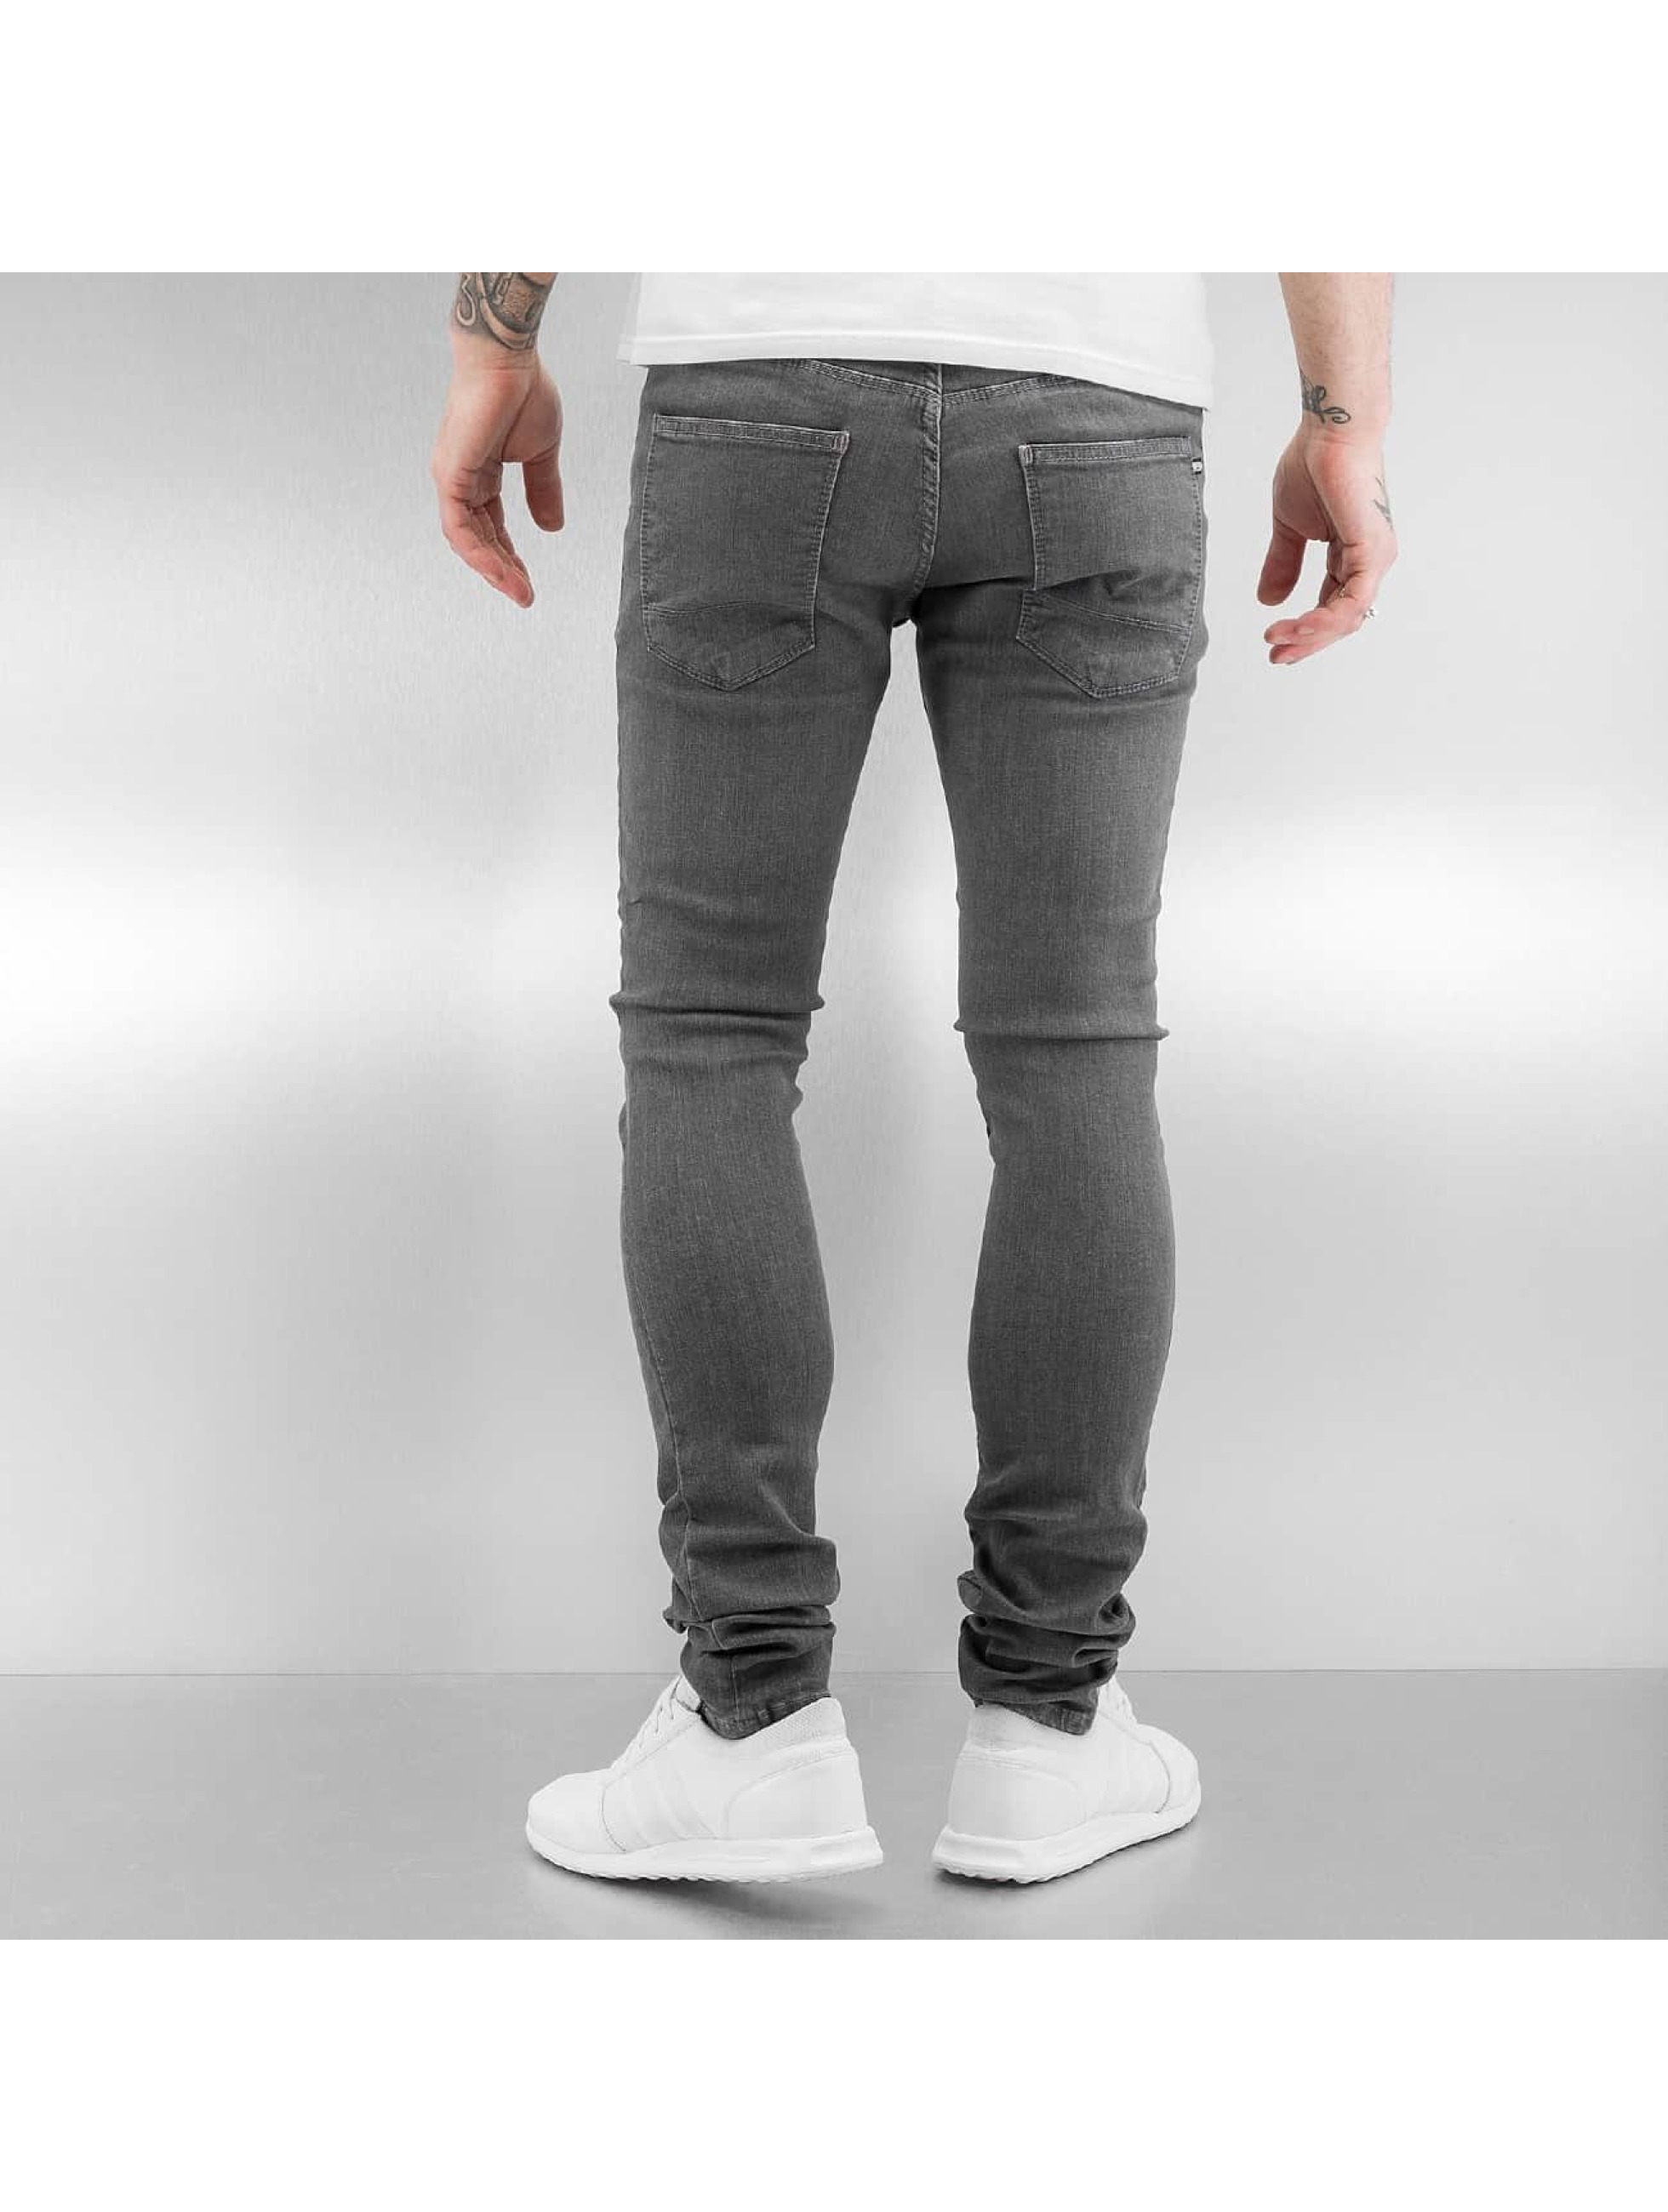 Reell Jeans Skinny Jeans Radar Stretch Super Slim Fit grau